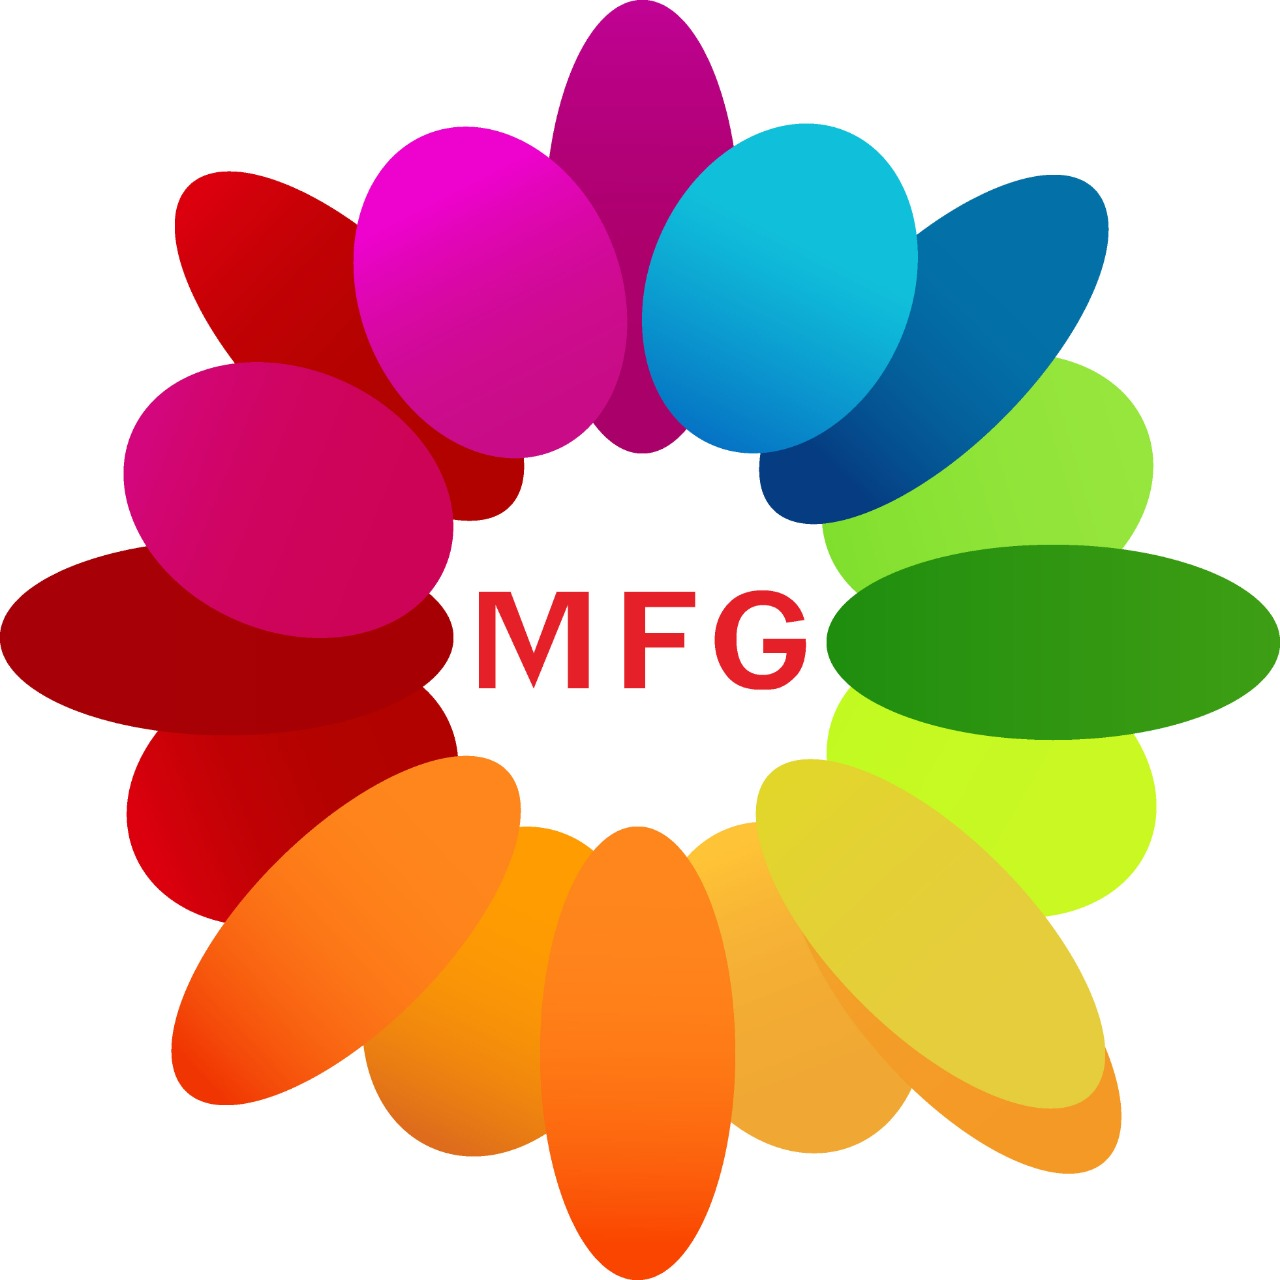 1 kg black forest cake(eggless) with 8 inch teddy bear with 6 pcs of assorted cadburies